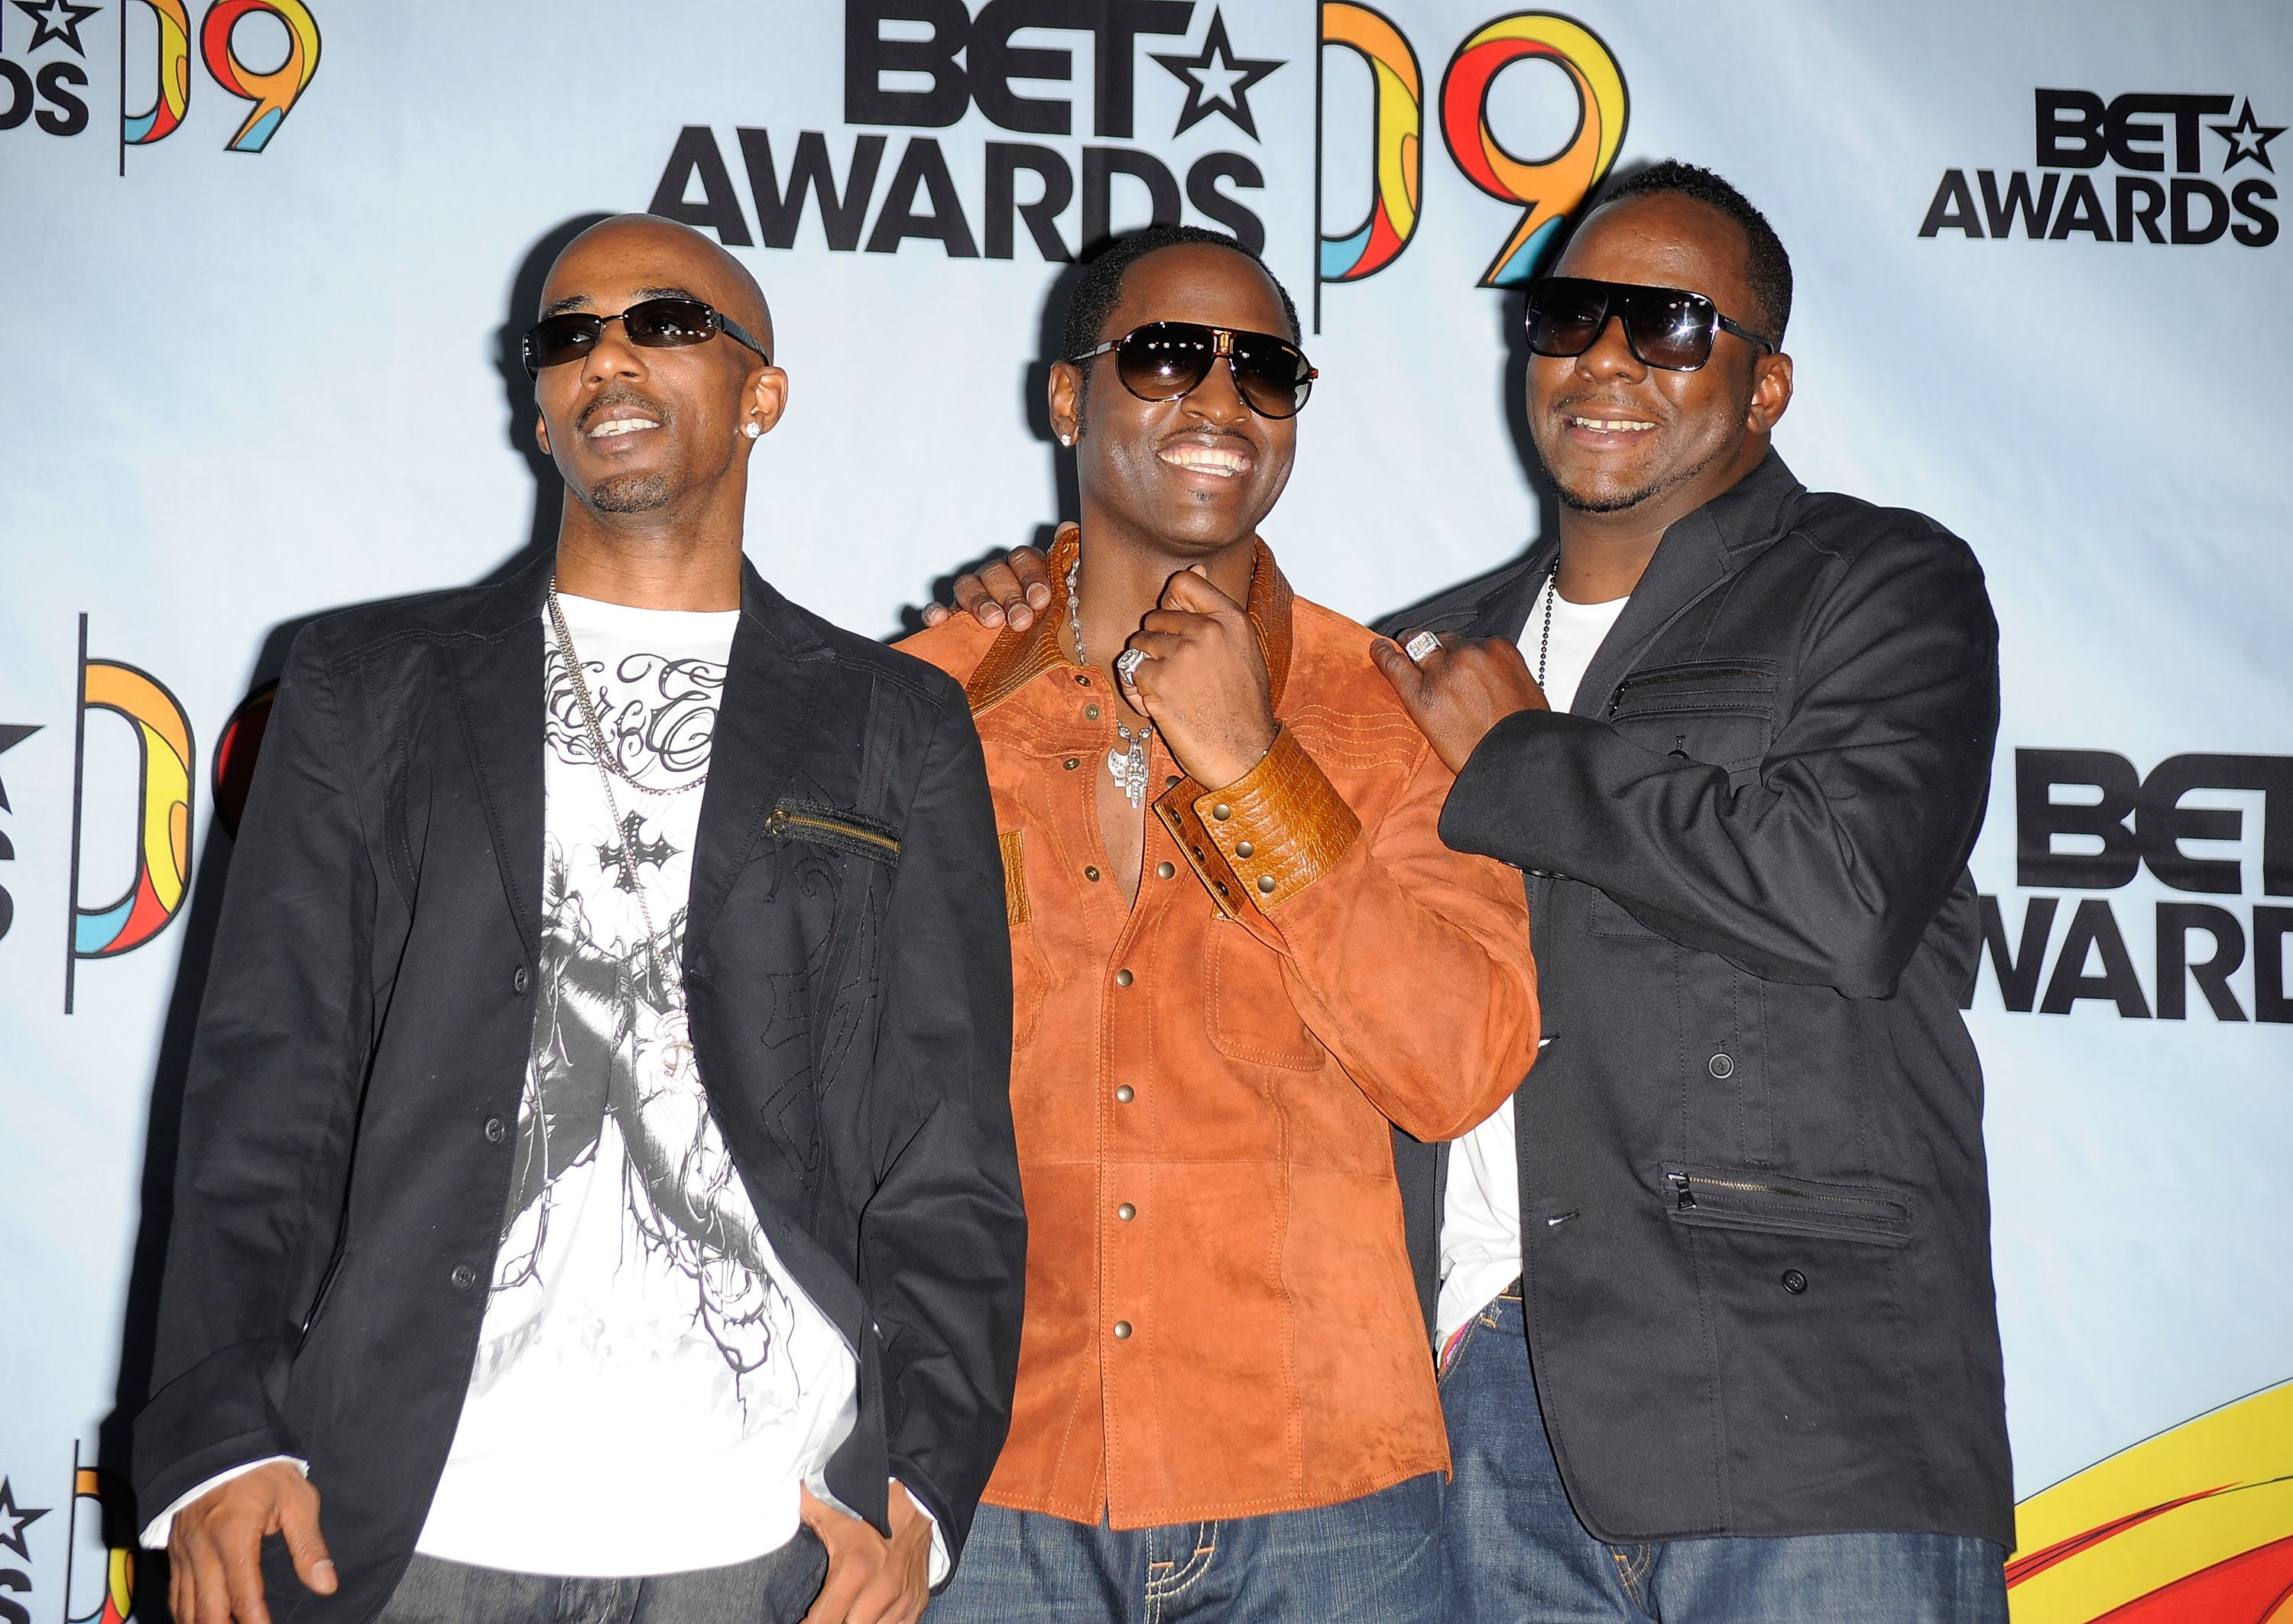 Ralph Tresvant, Johnny Gill and Bobby Brown at the 2009 BET Awards. | Source: GettyImages